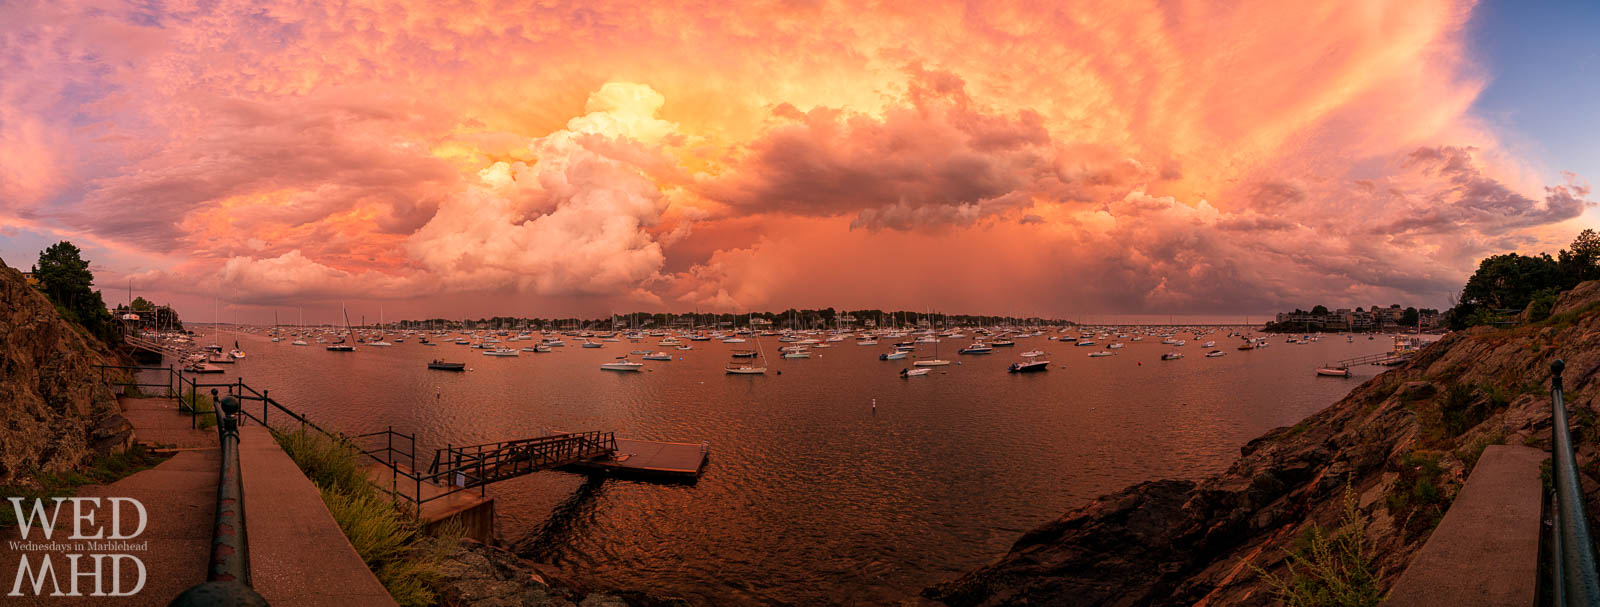 A storm passes and the creates this jaw-dropping view of an orange sky over Marblehead Harbor and the Neck with boats filling every mooring and the Crocker Park float leading the eye